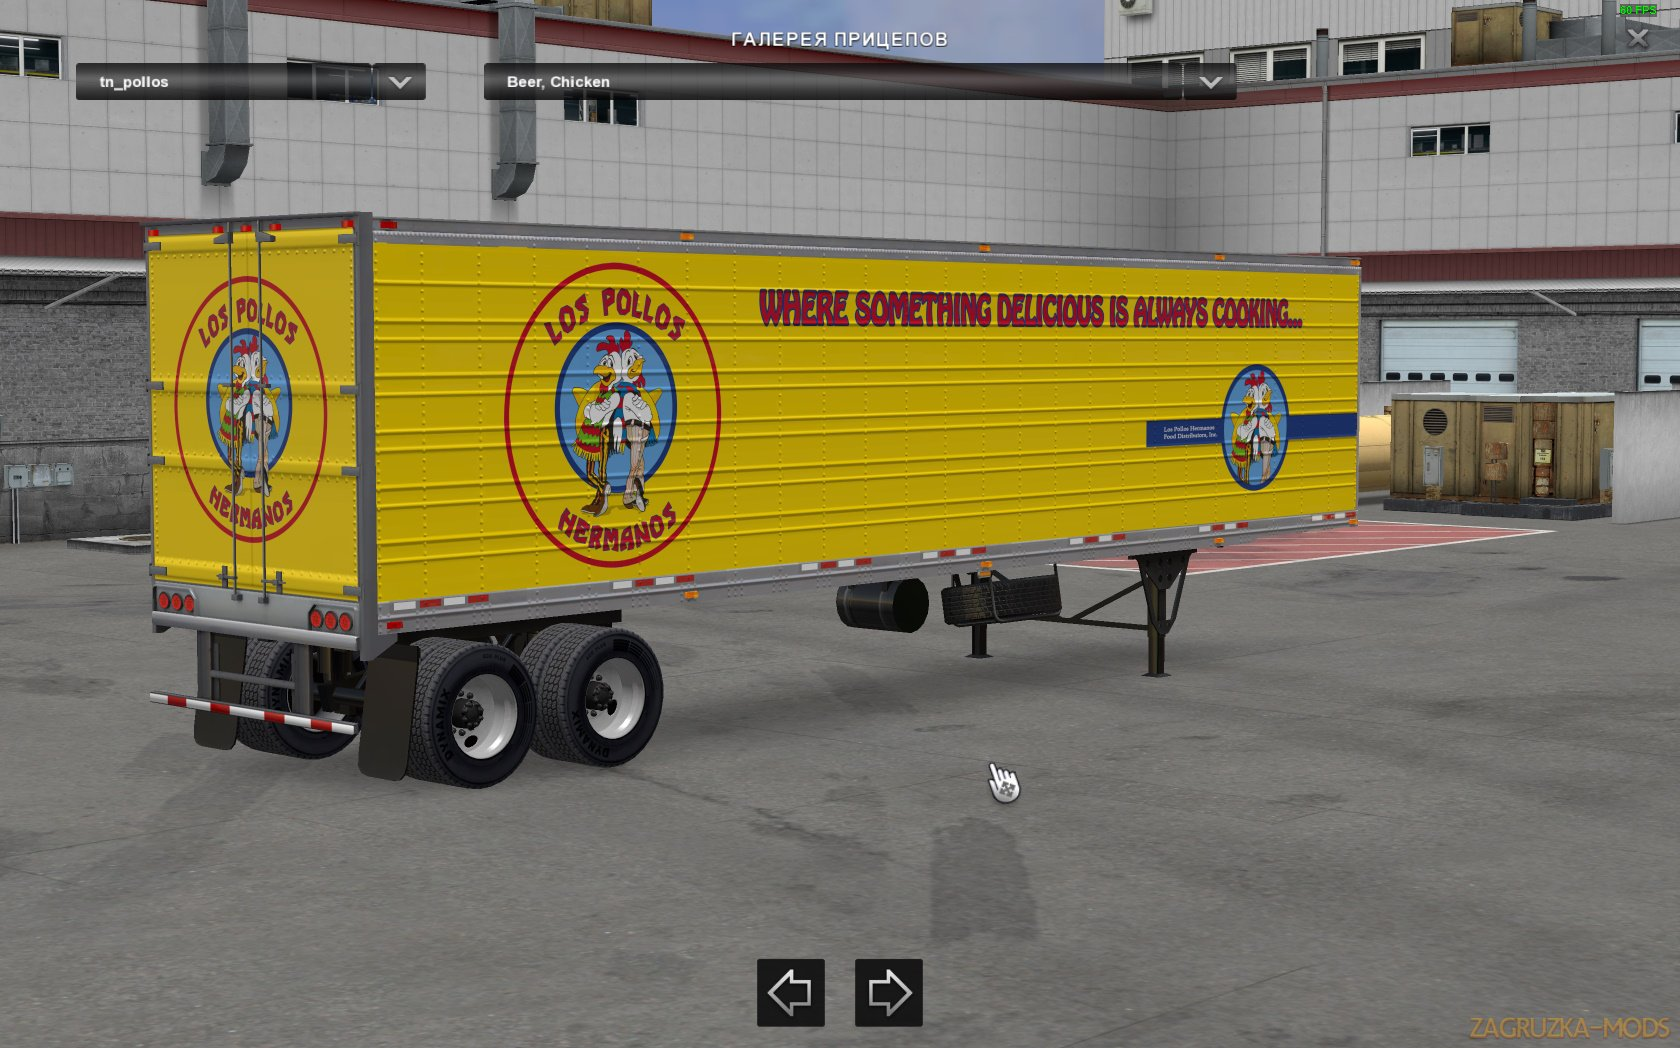 Los Pollos Hermanos 579 Skin and Standalone Trailer for Ats